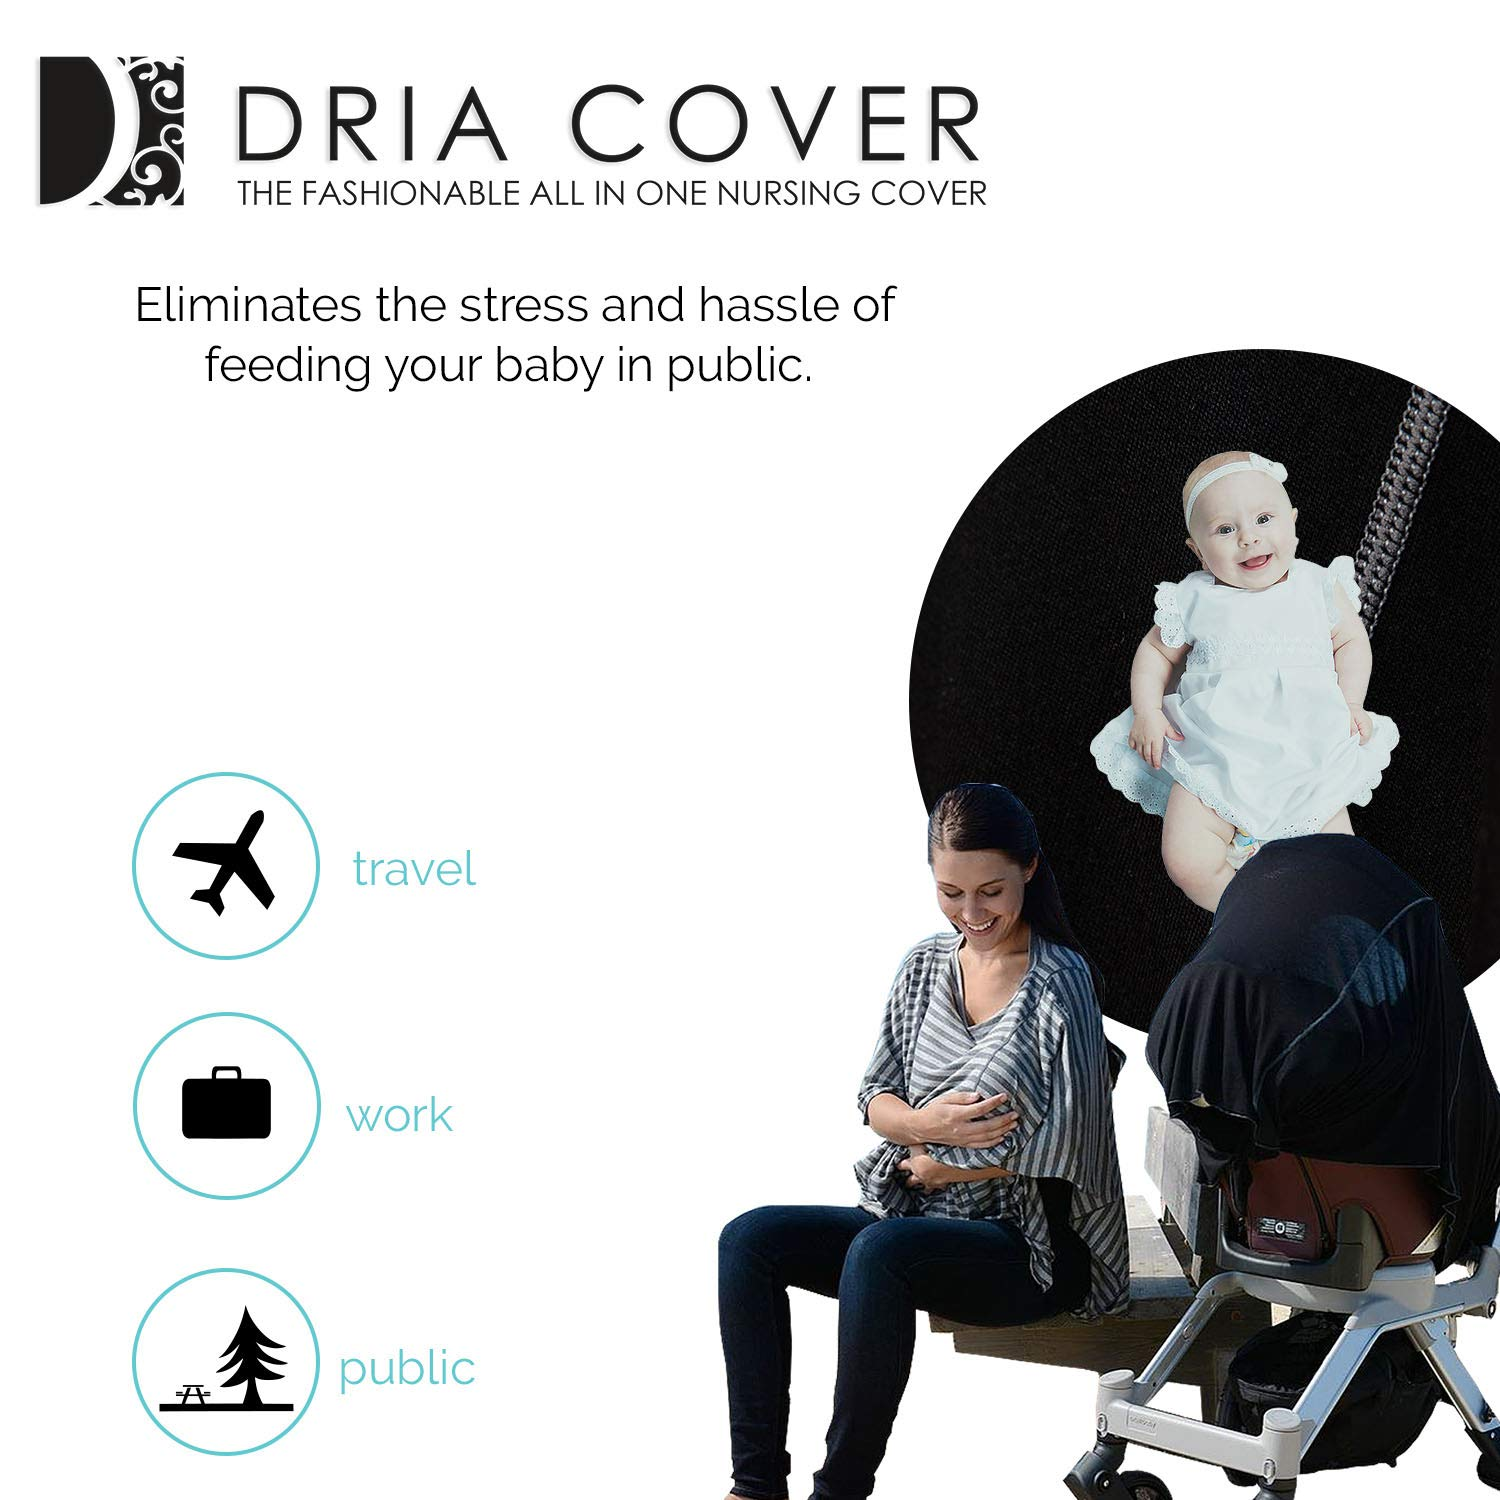 Nursing Covers by Dria 'The All-In-One Fashionable Nursing Cover, Stroller Cover, Car Seat Cover' - Made in USA from Premium Four Way Stretch and Breathable Modal Fabric (Milano Style: Black)